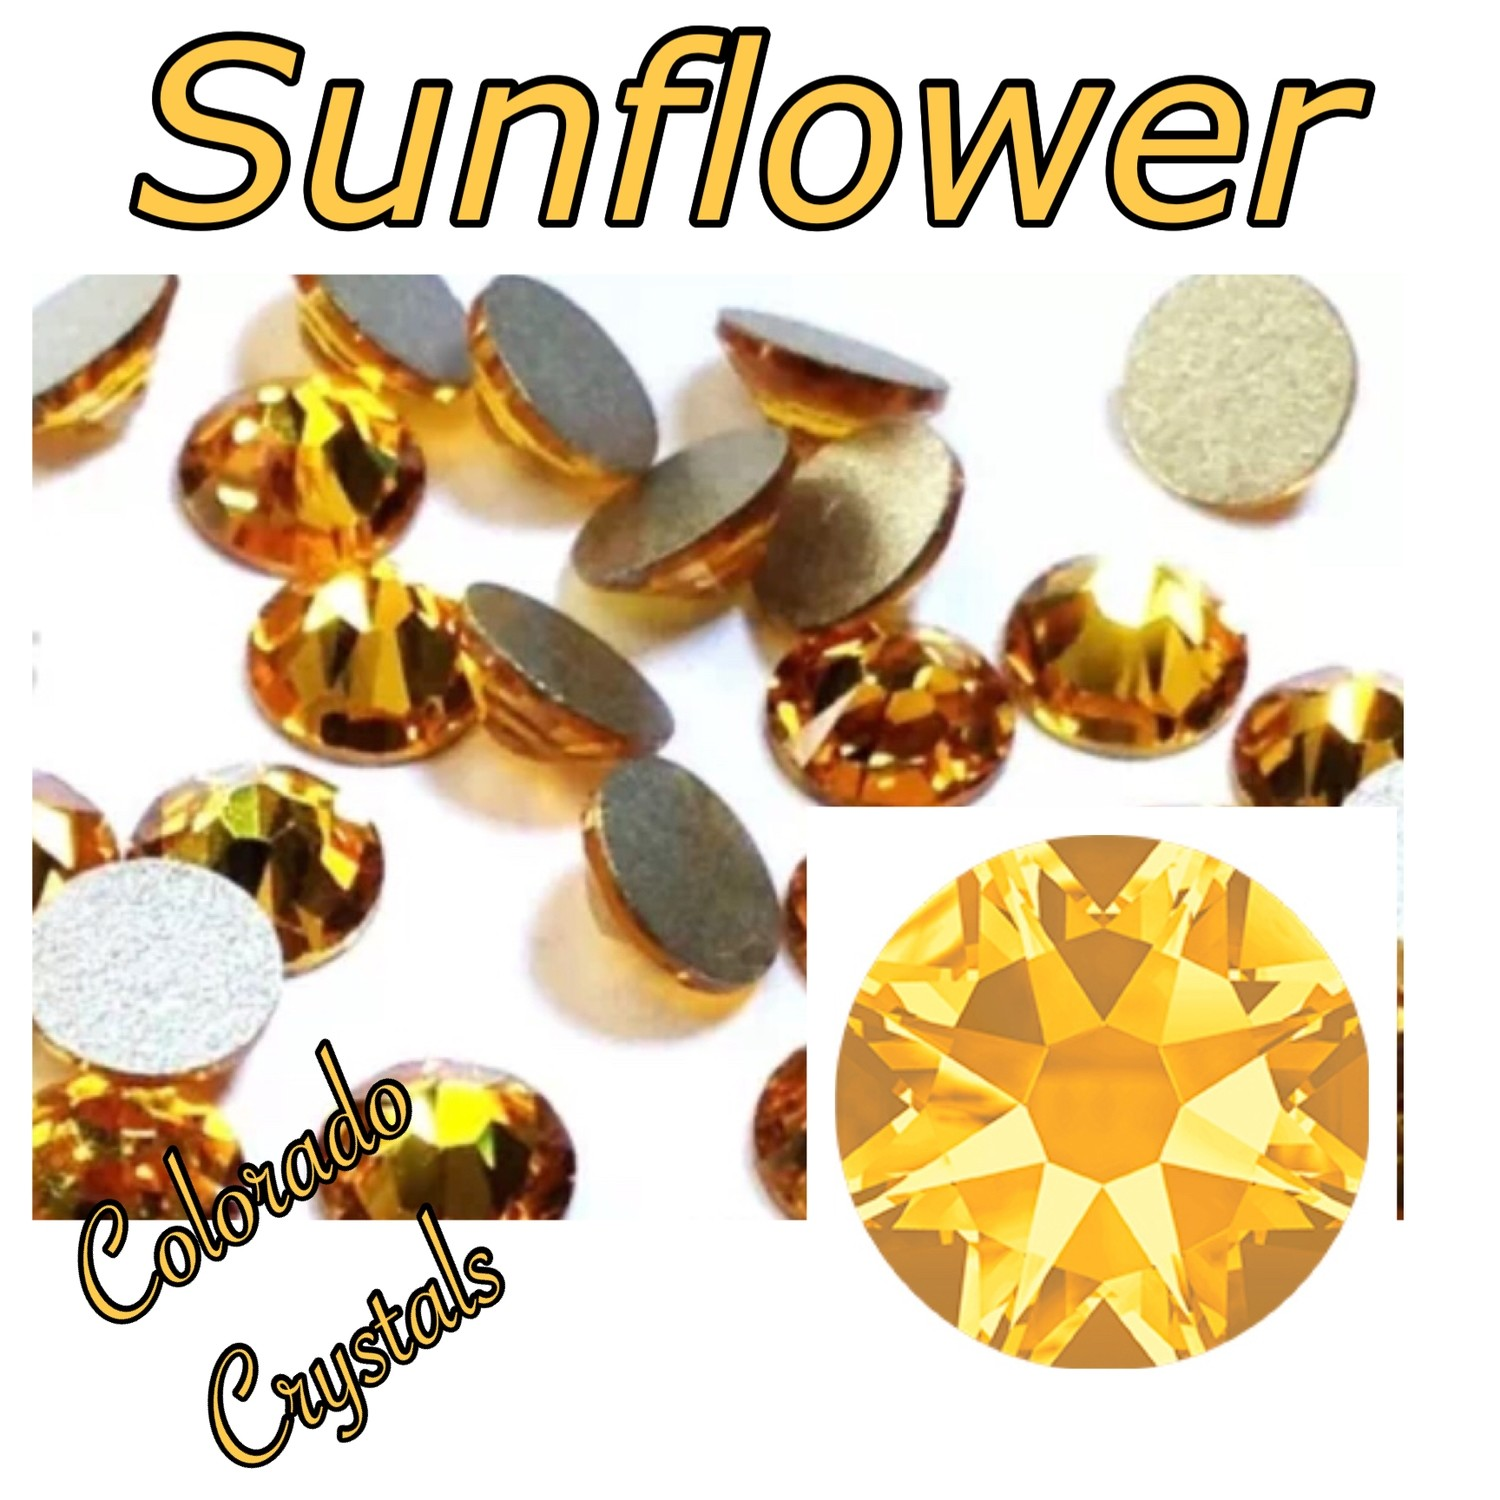 Sunflower 5ss 2058 Limited